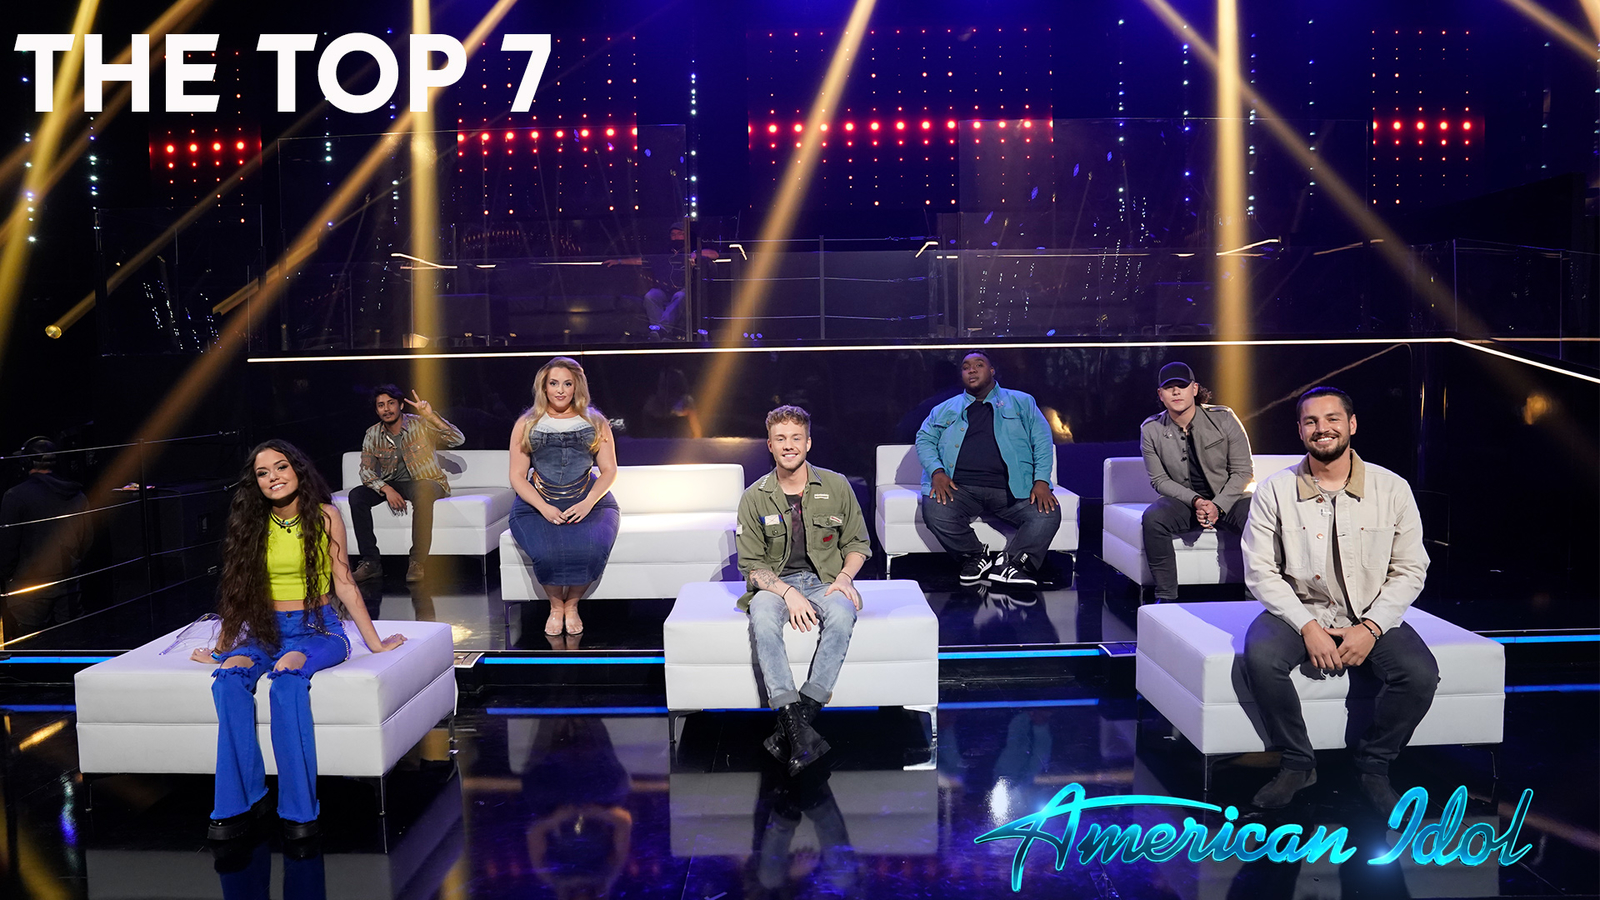 'American Idol' recap: Coldplay, Mother's Day and the Top 5 revealed!